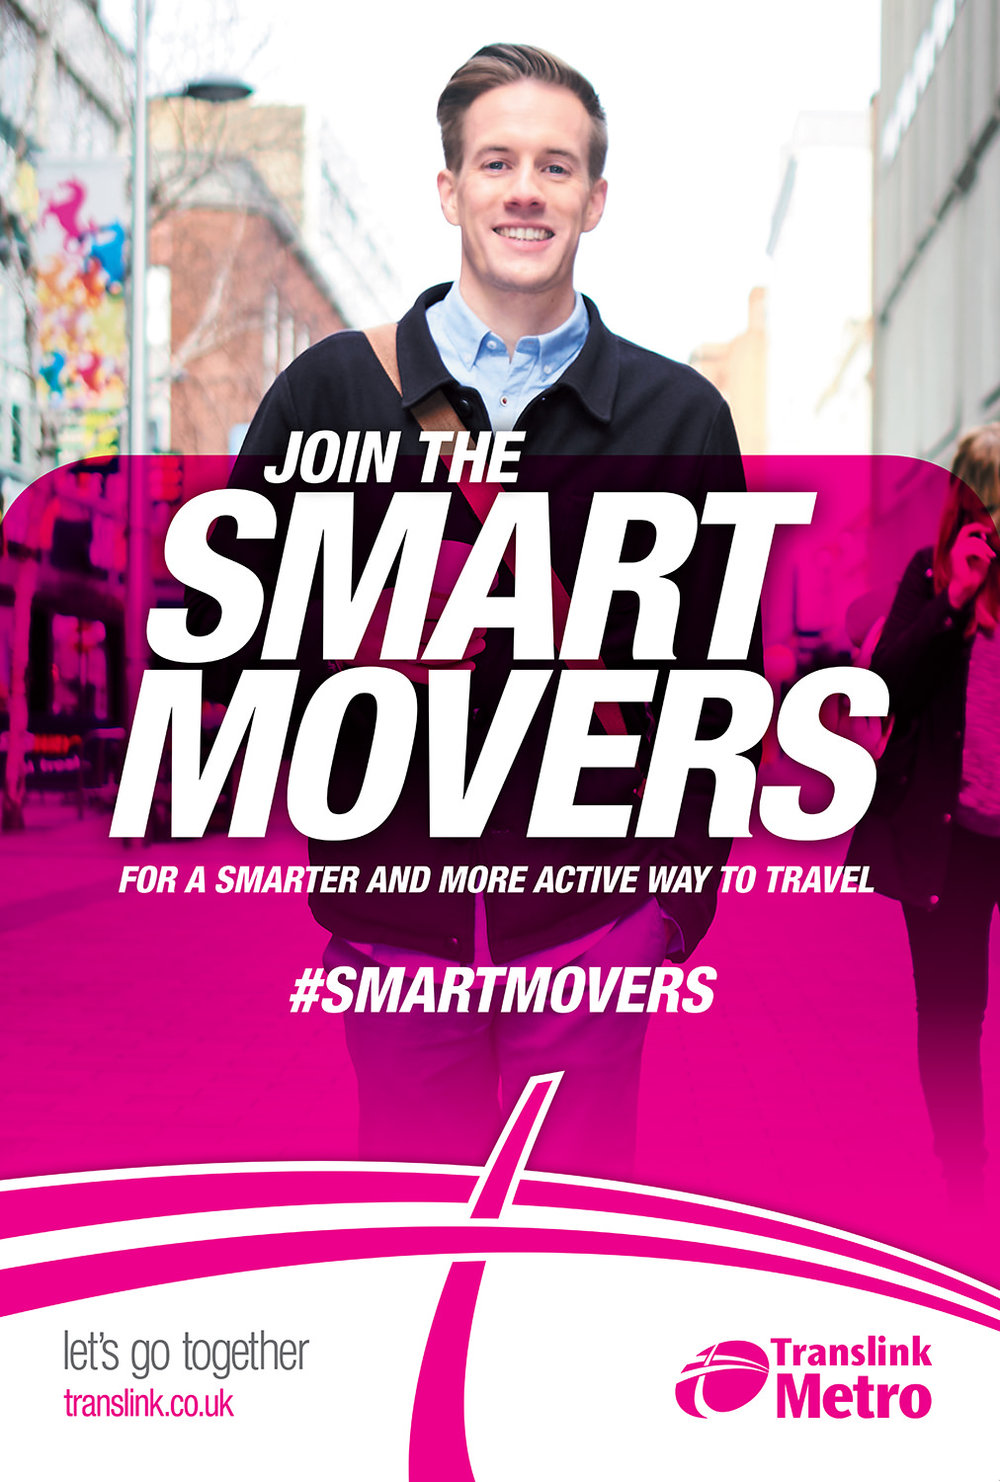 1500_003903+TL_JoinTheSmartMovers_Metro_6SHEET_HR.jpg